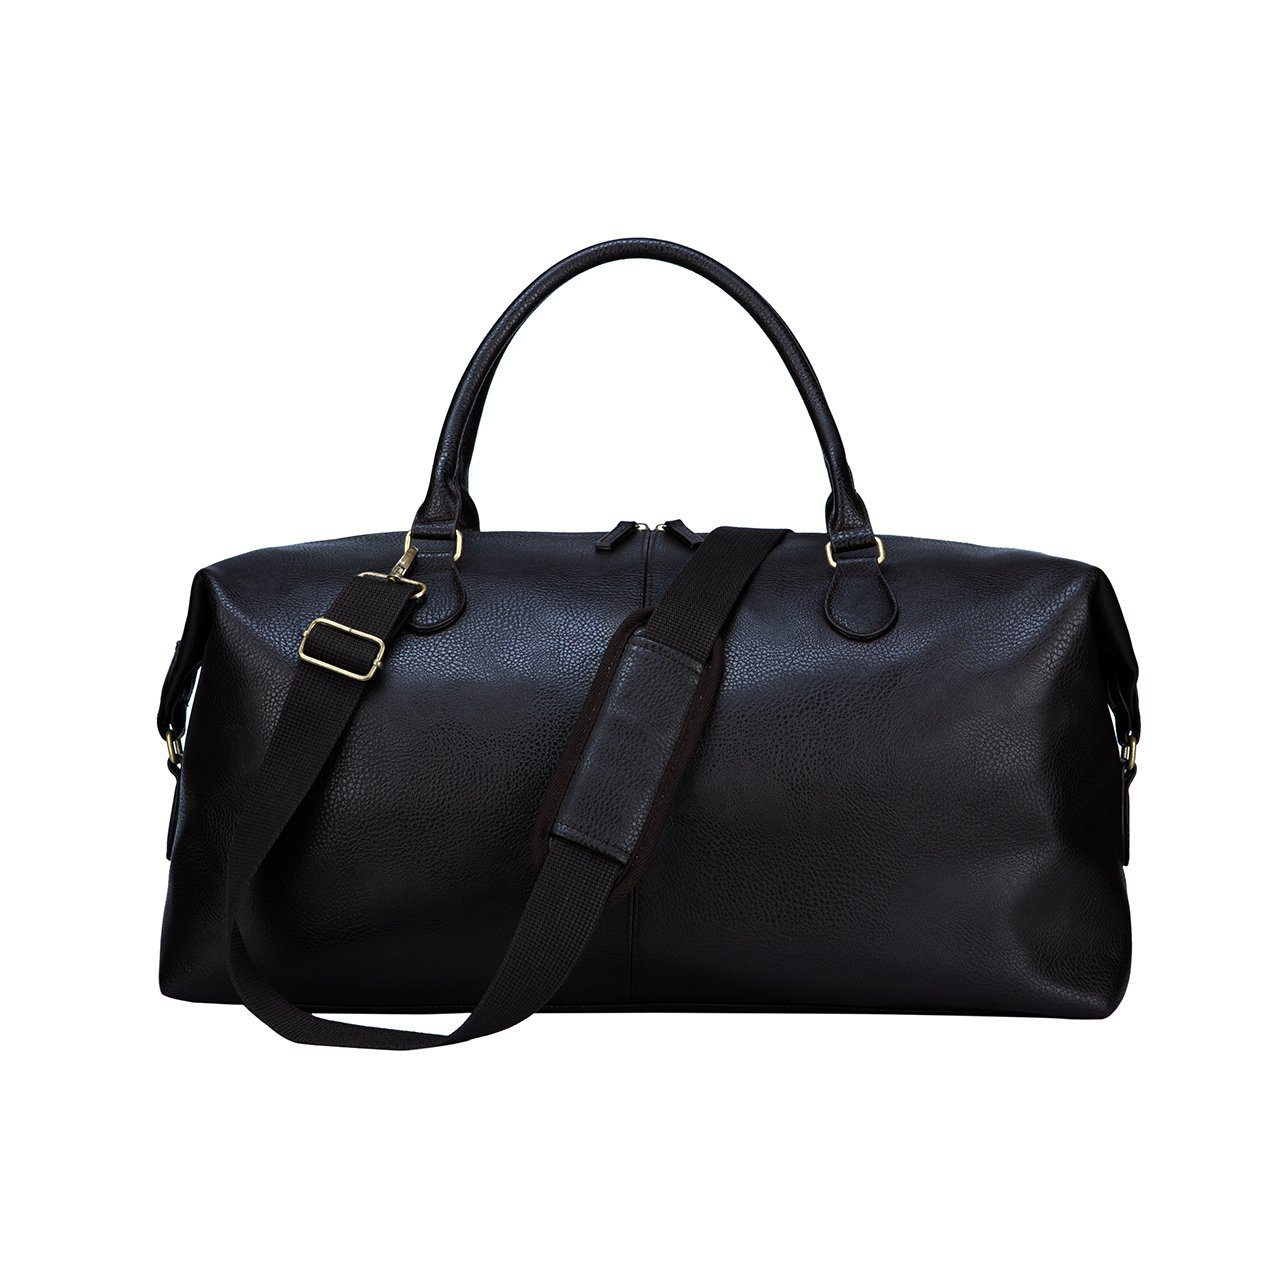 Duffle Bag - Gunner Black Vegan Leather Duffle Bag